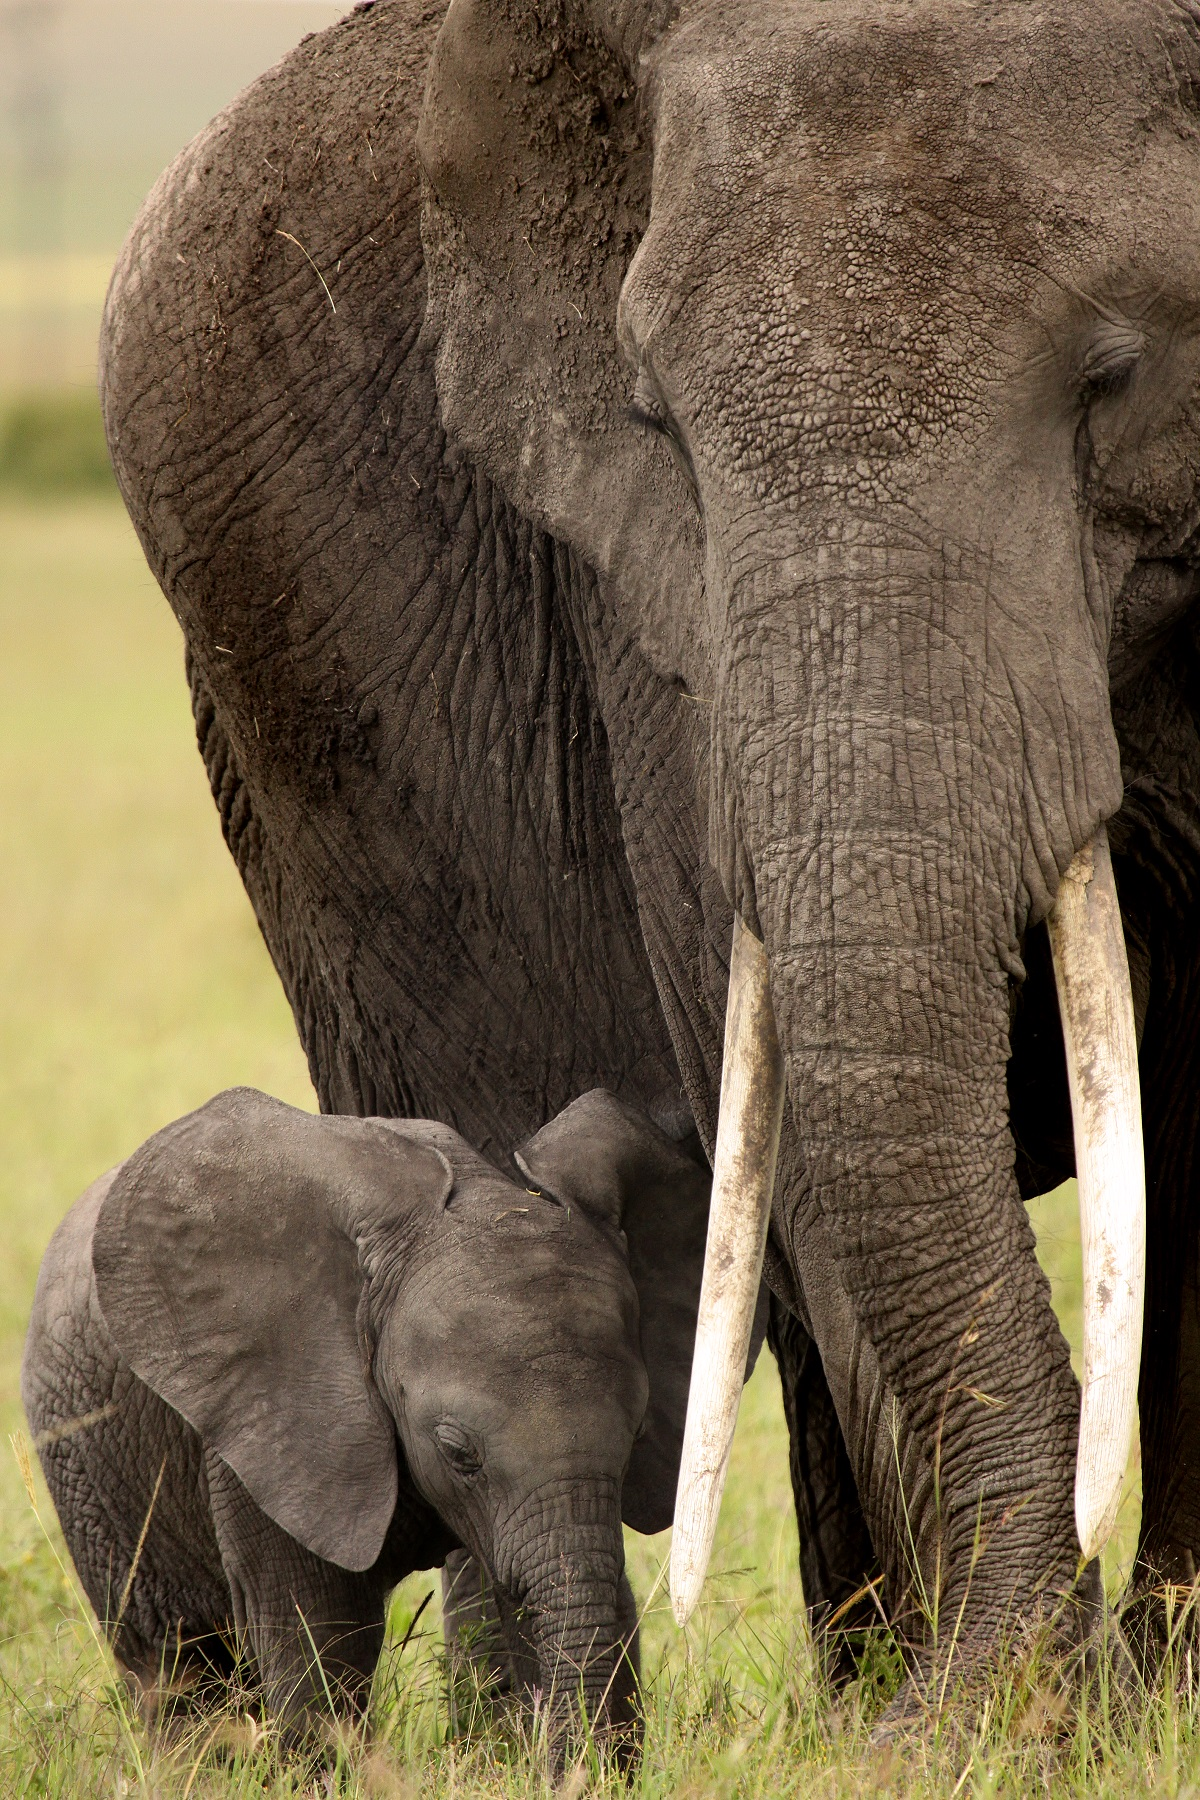 Elephant with baby in Africa.